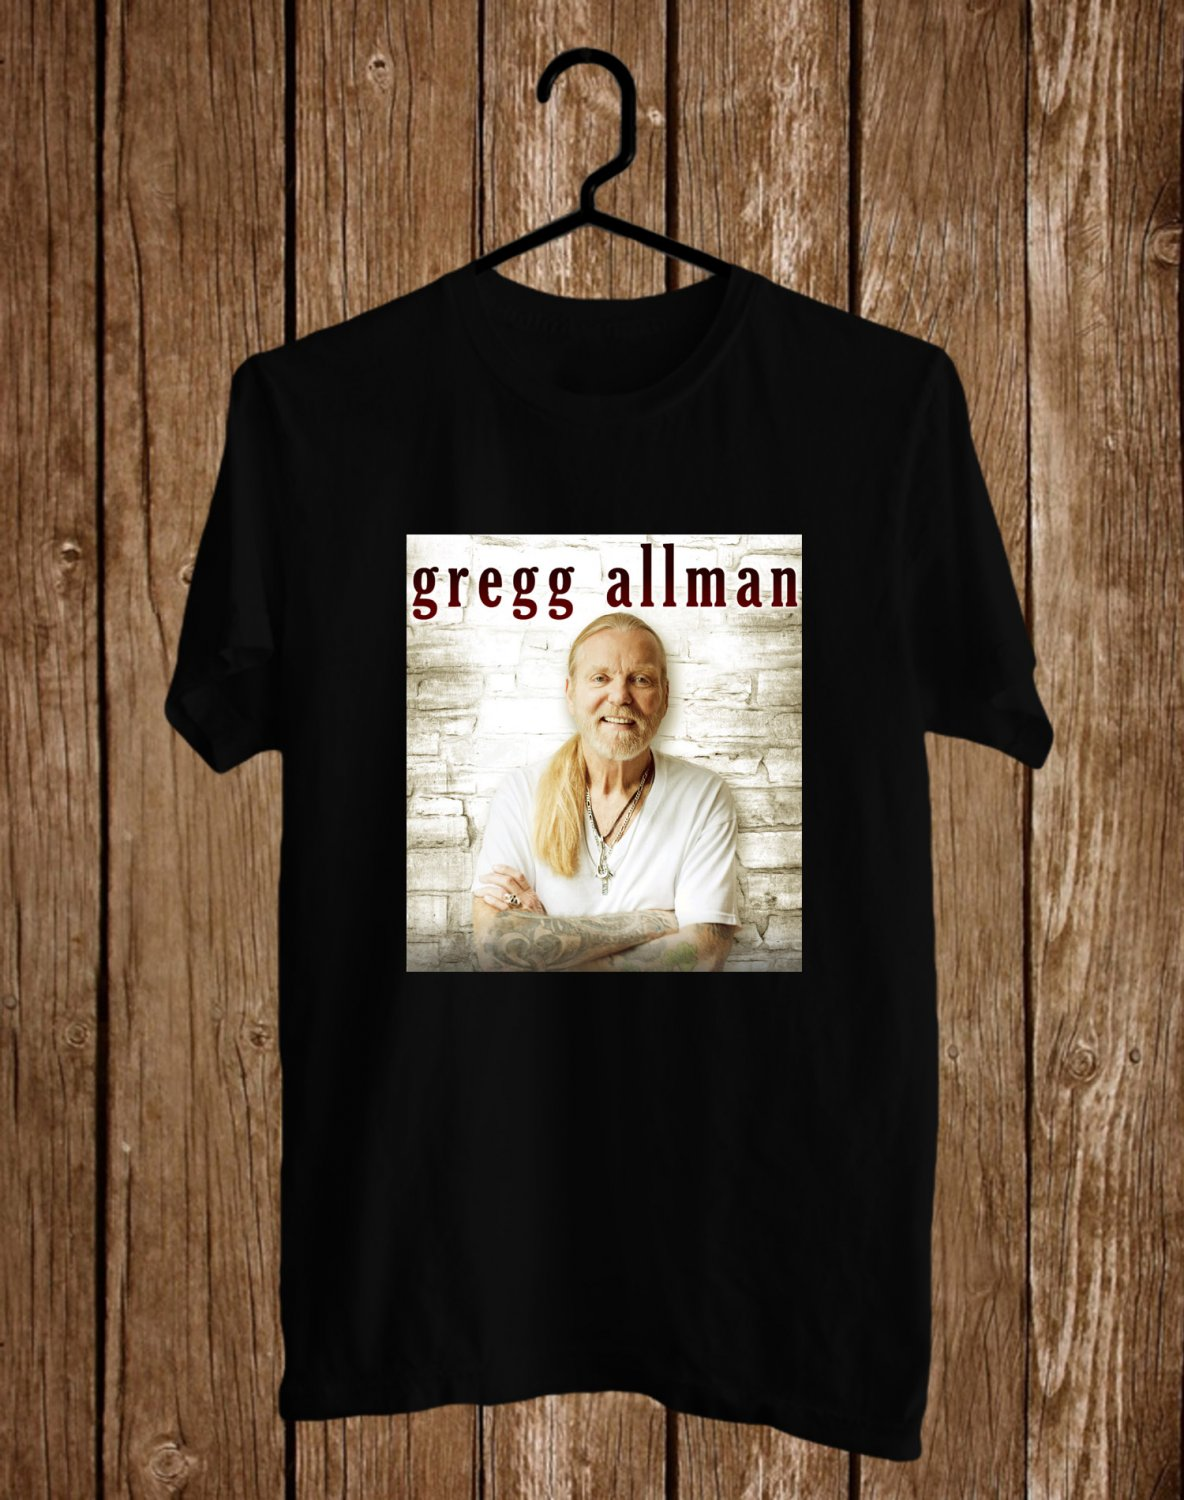 Tribute to Gregg Allman Black Tee's Front Side by Complexart